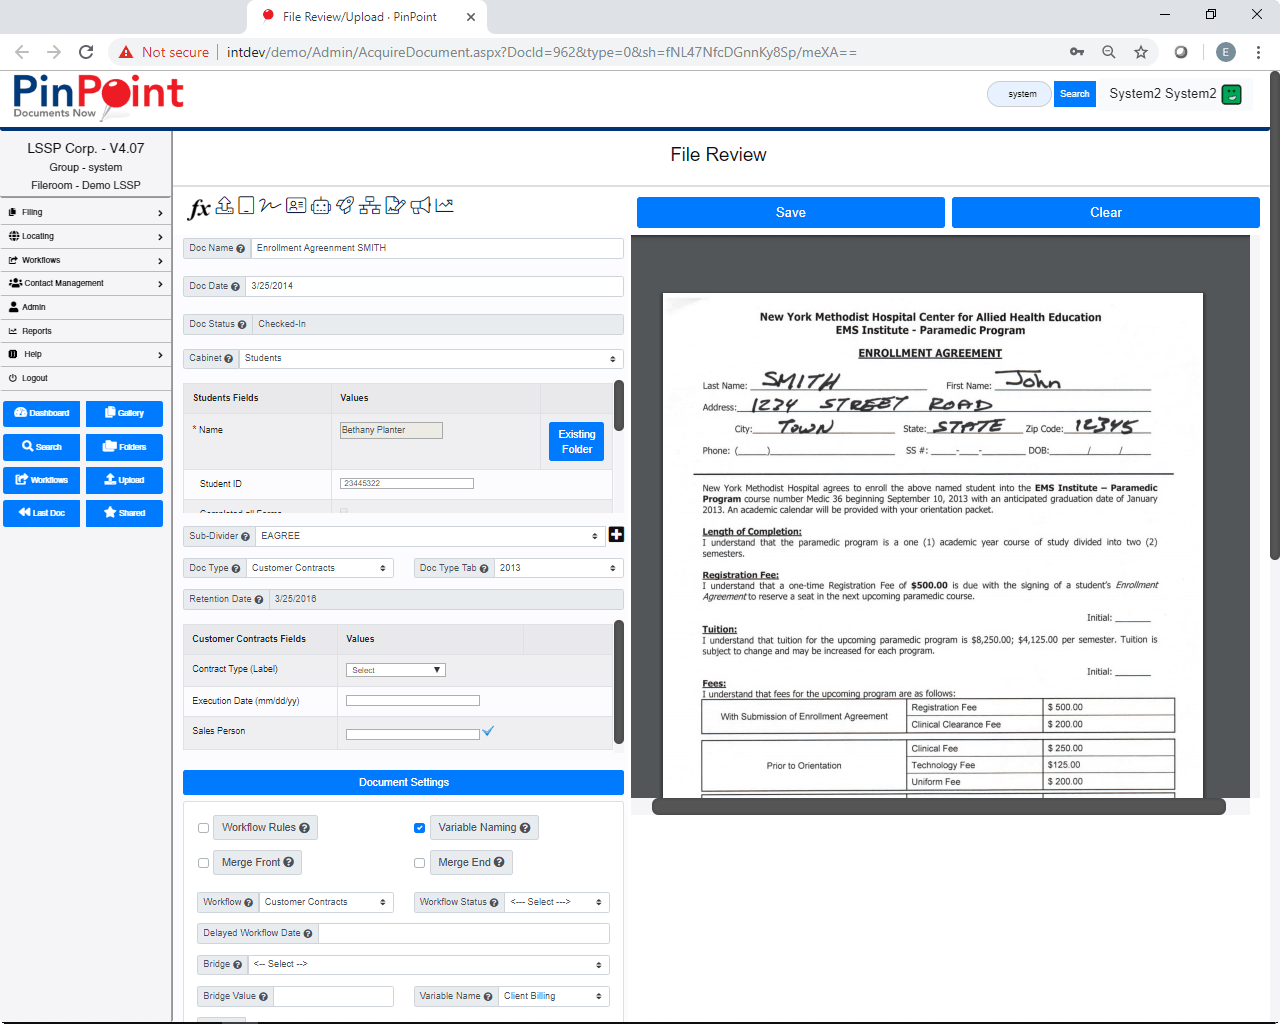 Document Management Software - PinPoint File Review Screen